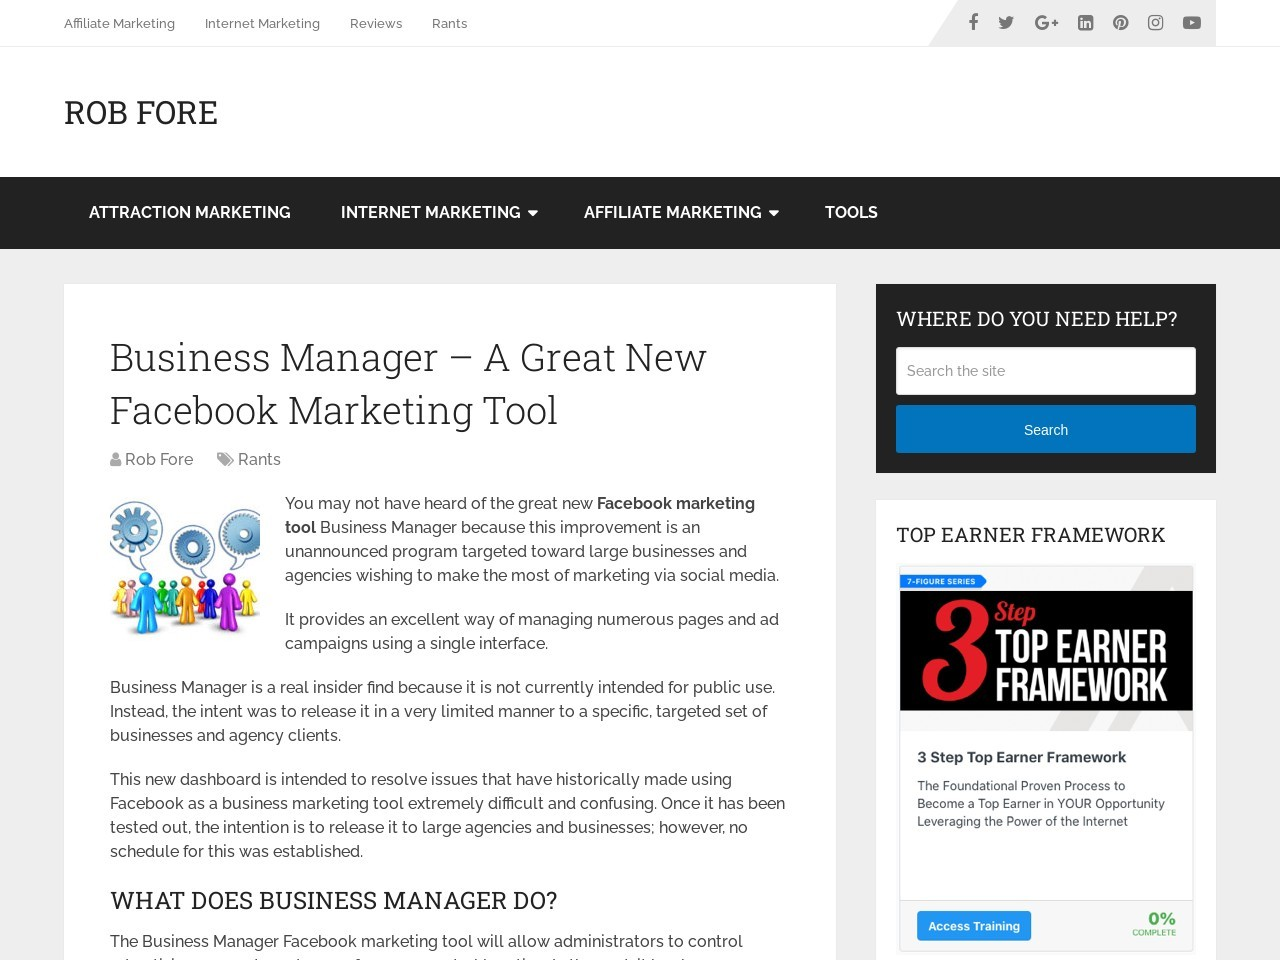 Business Manager – A Great New Facebook Marketing Tool